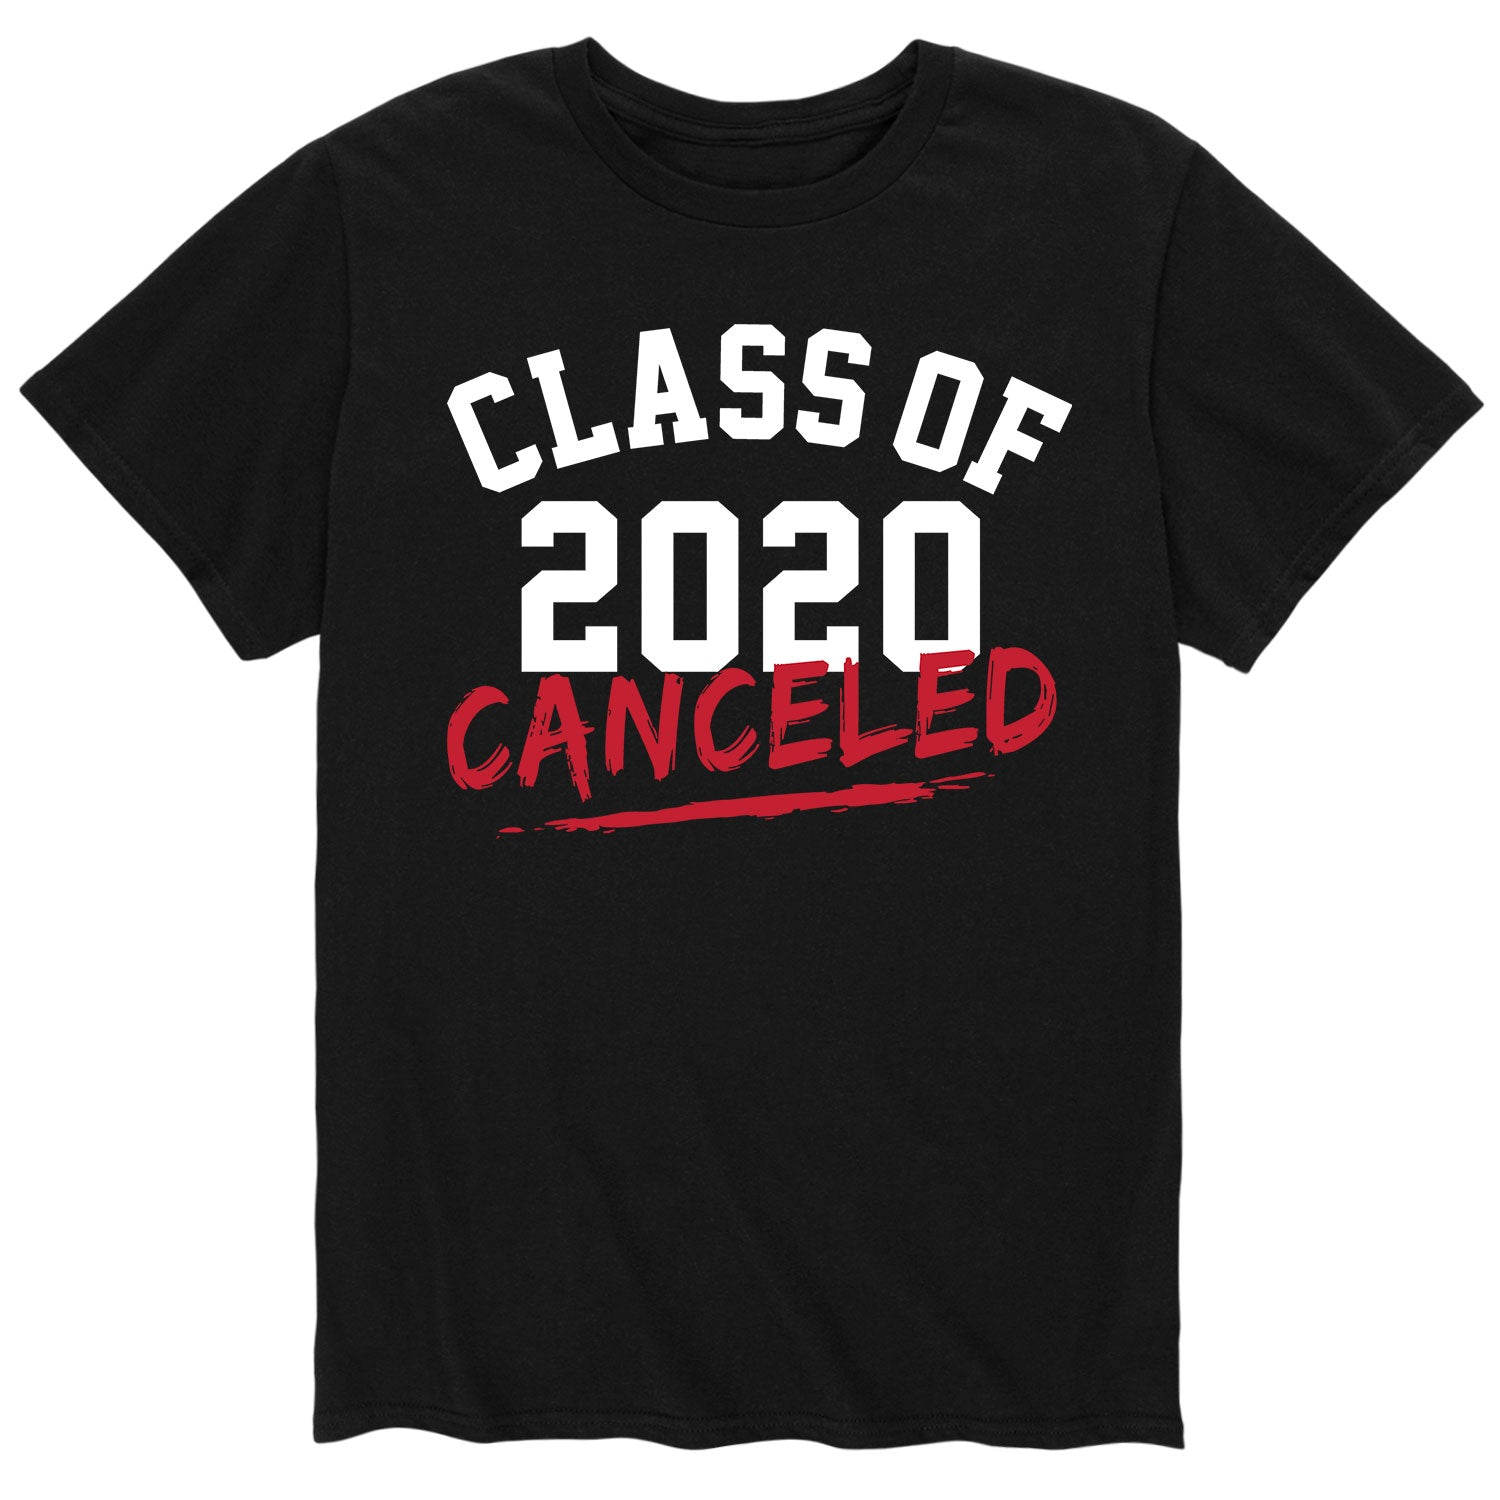 Class of 2020 Cancelled - Men's Short Sleeve T-Shirt